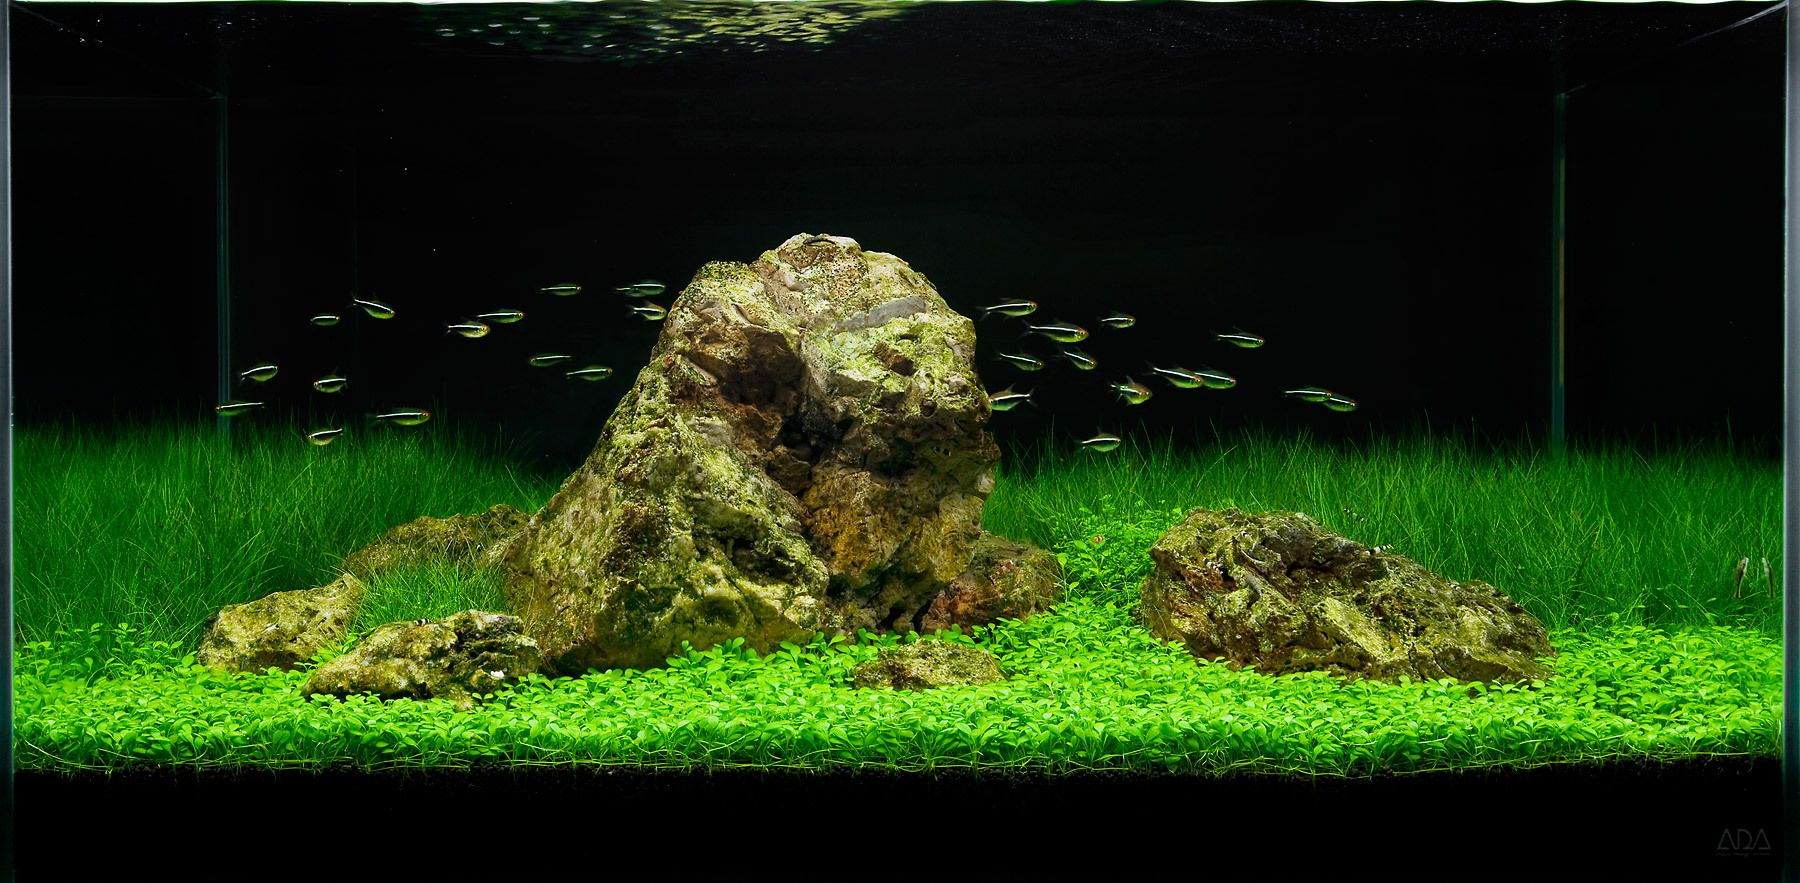 A Tranquil Aquascape in the ADA 90-P